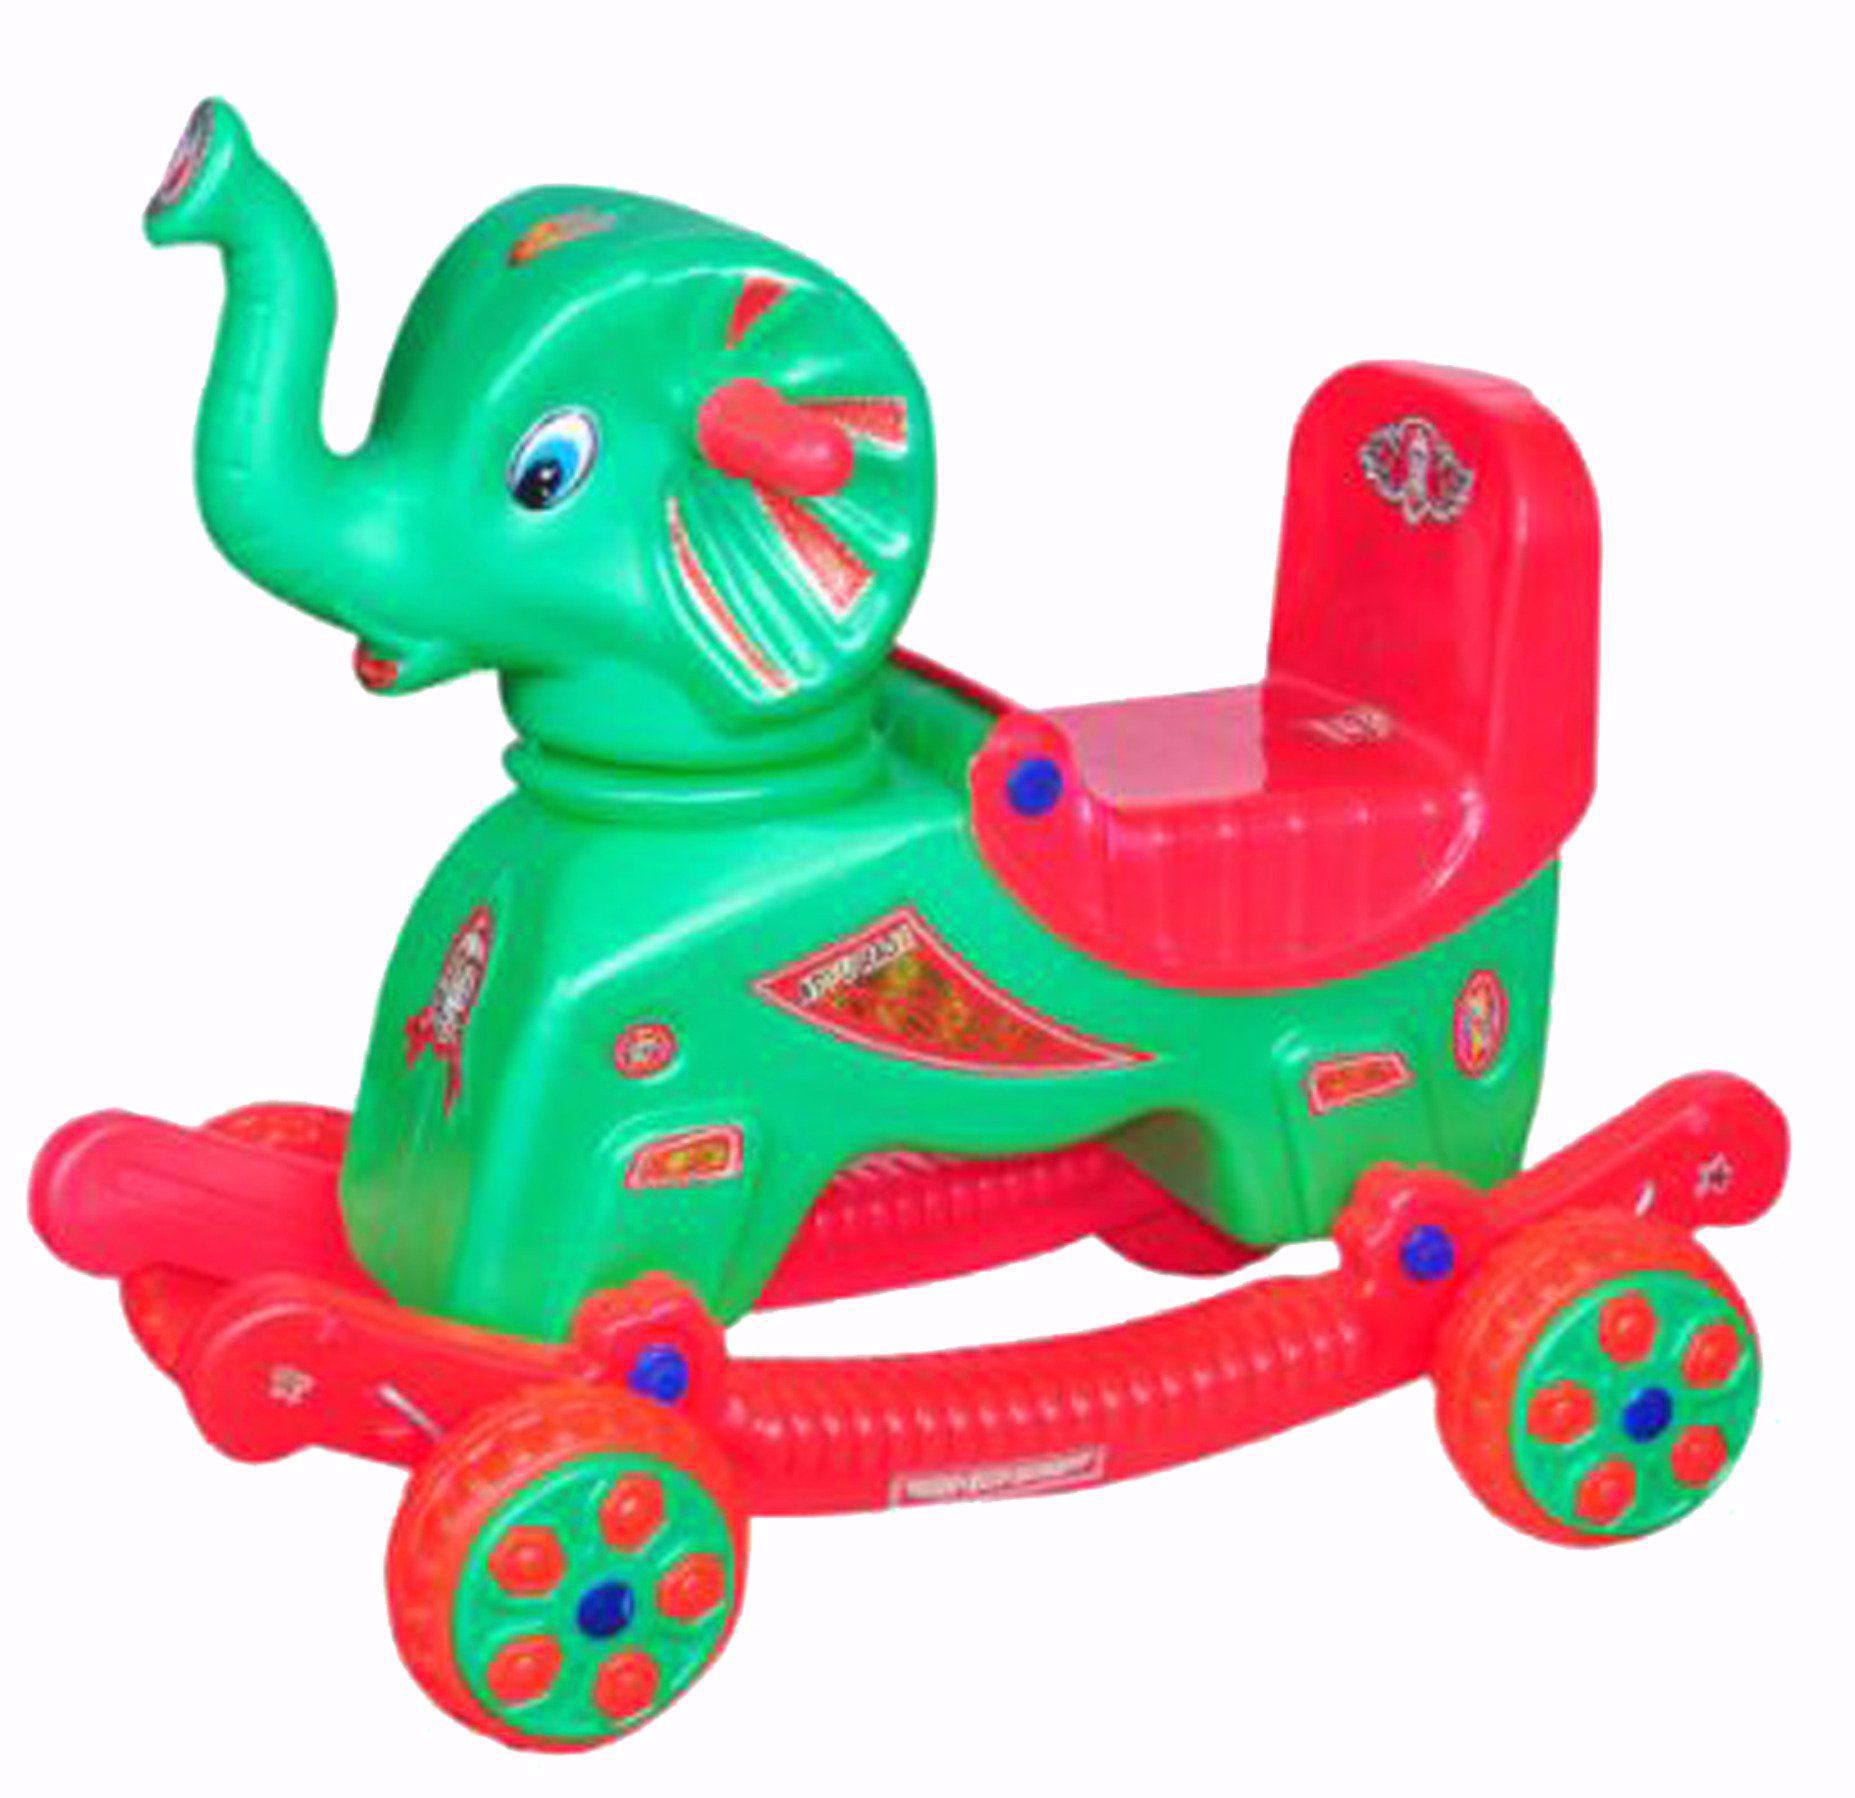 Baby Musical Elephant Rider Green & Red